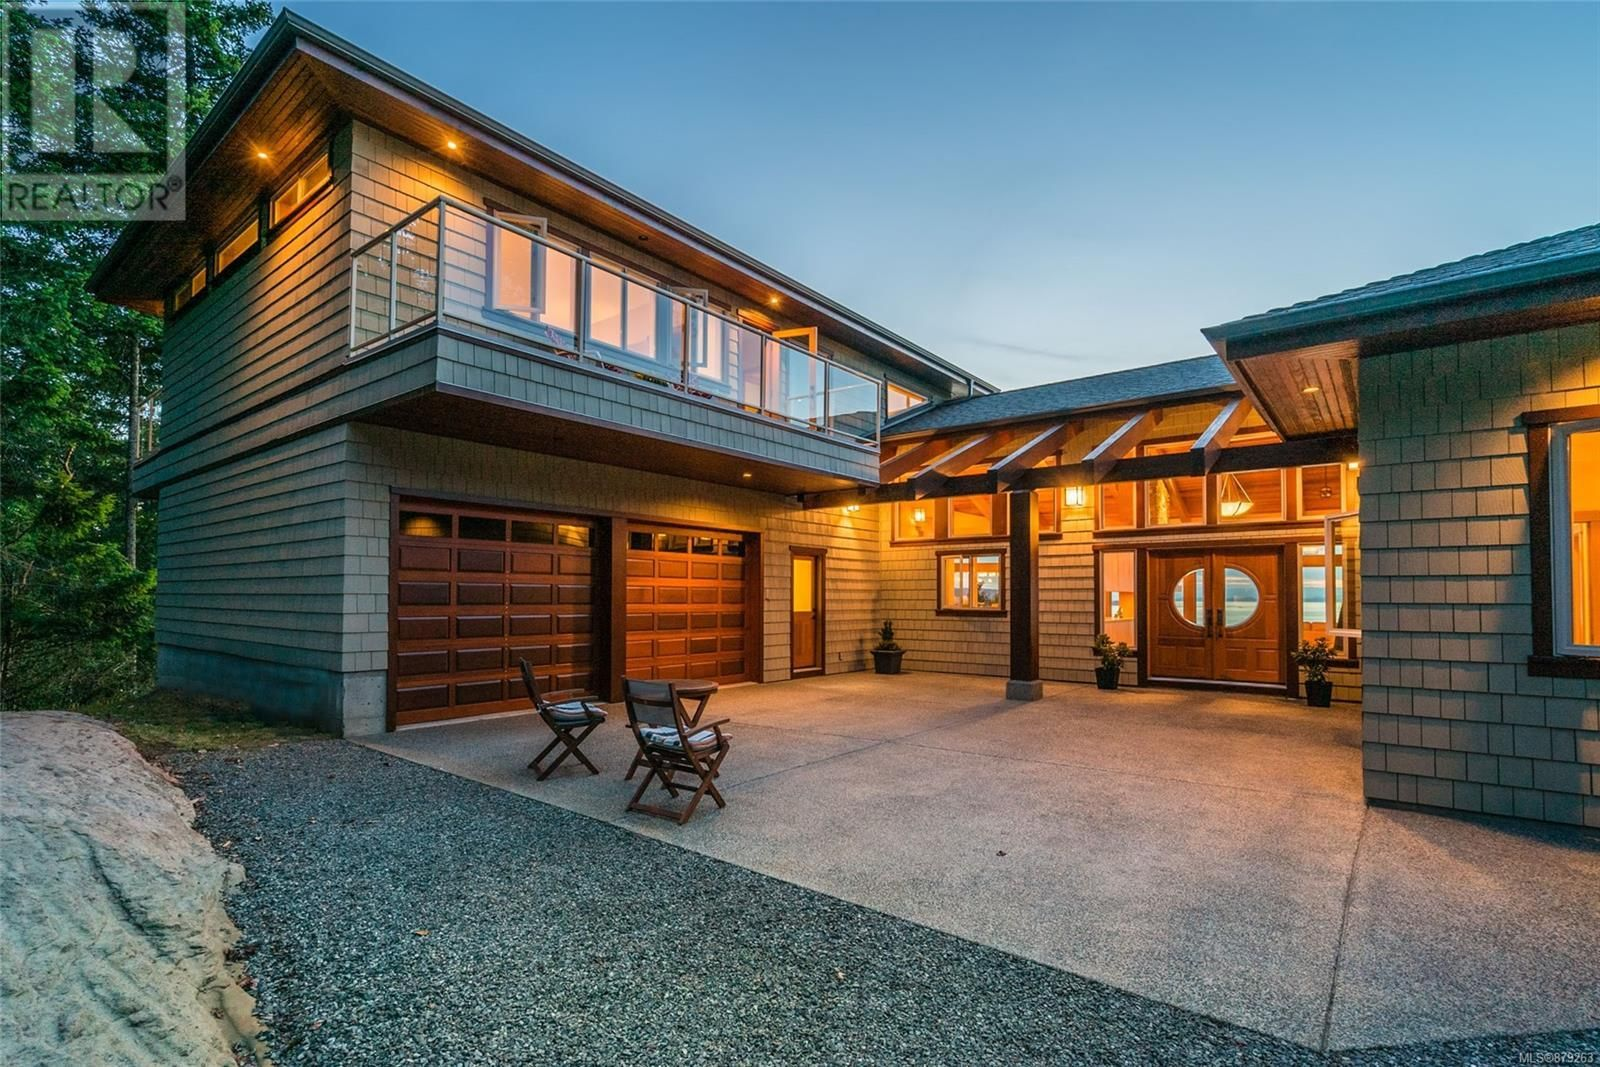 Photo 4: Photos: 825 Duthie Ave in Gabriola Island: House for sale : MLS®# 879263